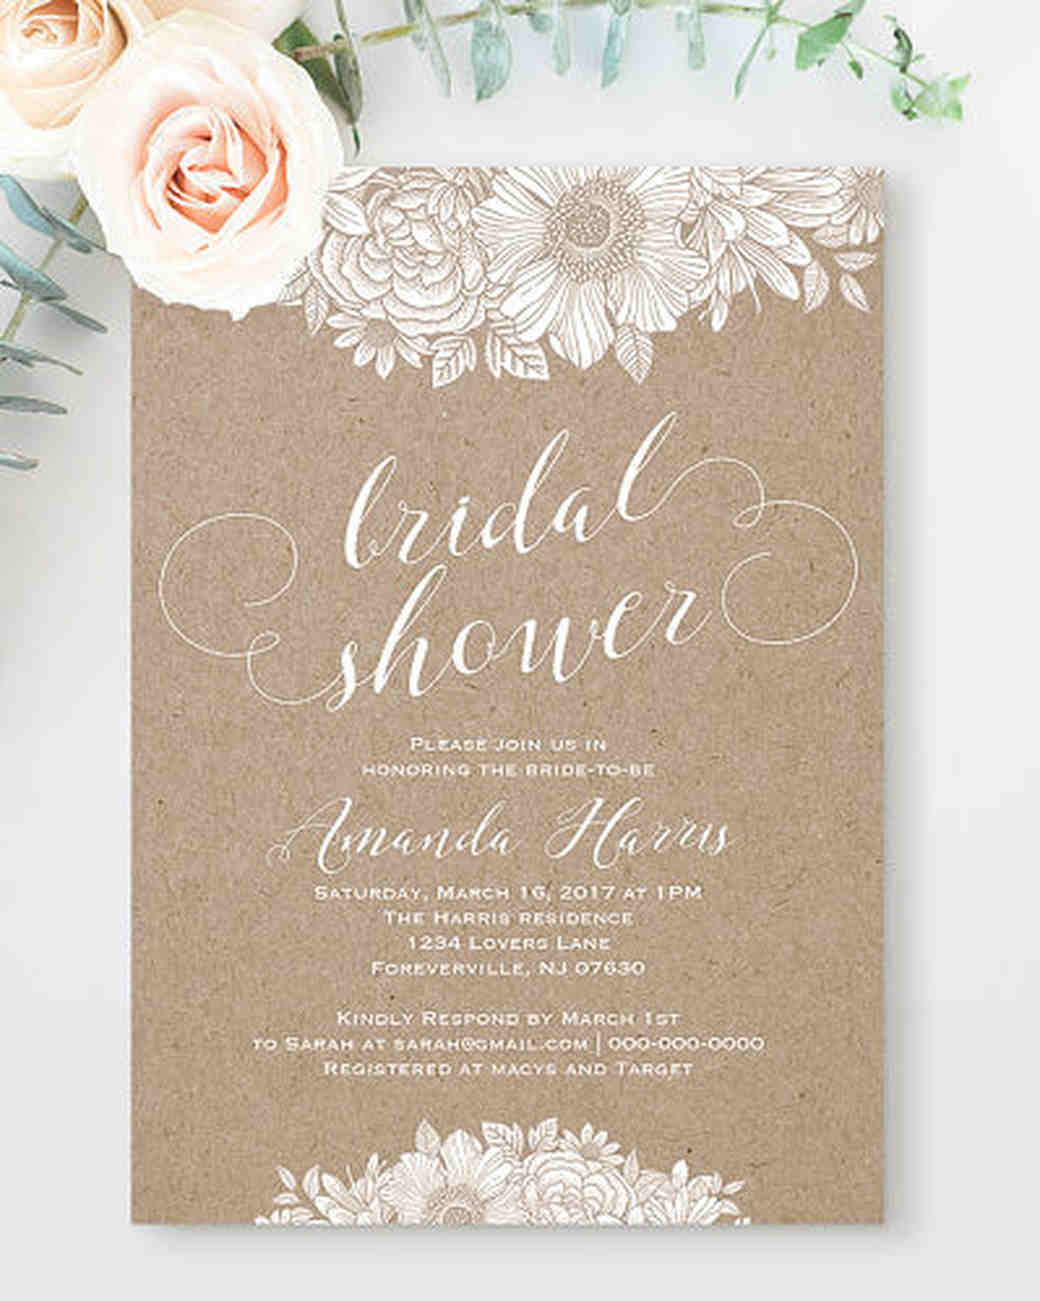 10 affordable bridal shower invitations you can print at home boho invitations filmwisefo